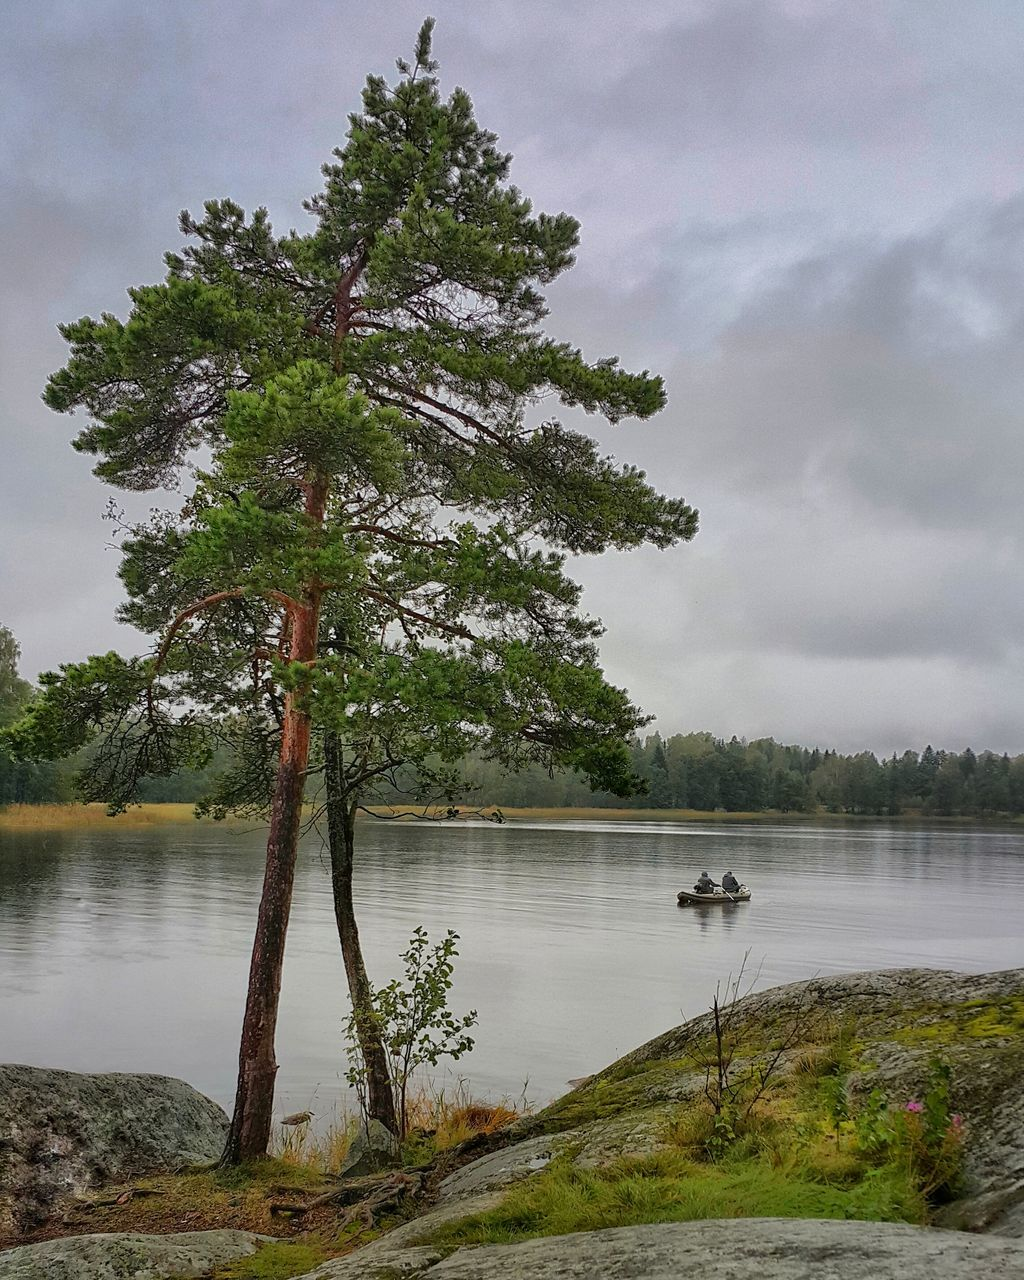 tree, water, lake, nature, tranquility, tranquil scene, beauty in nature, growth, scenics, sky, no people, cloud - sky, outdoors, day, landscape